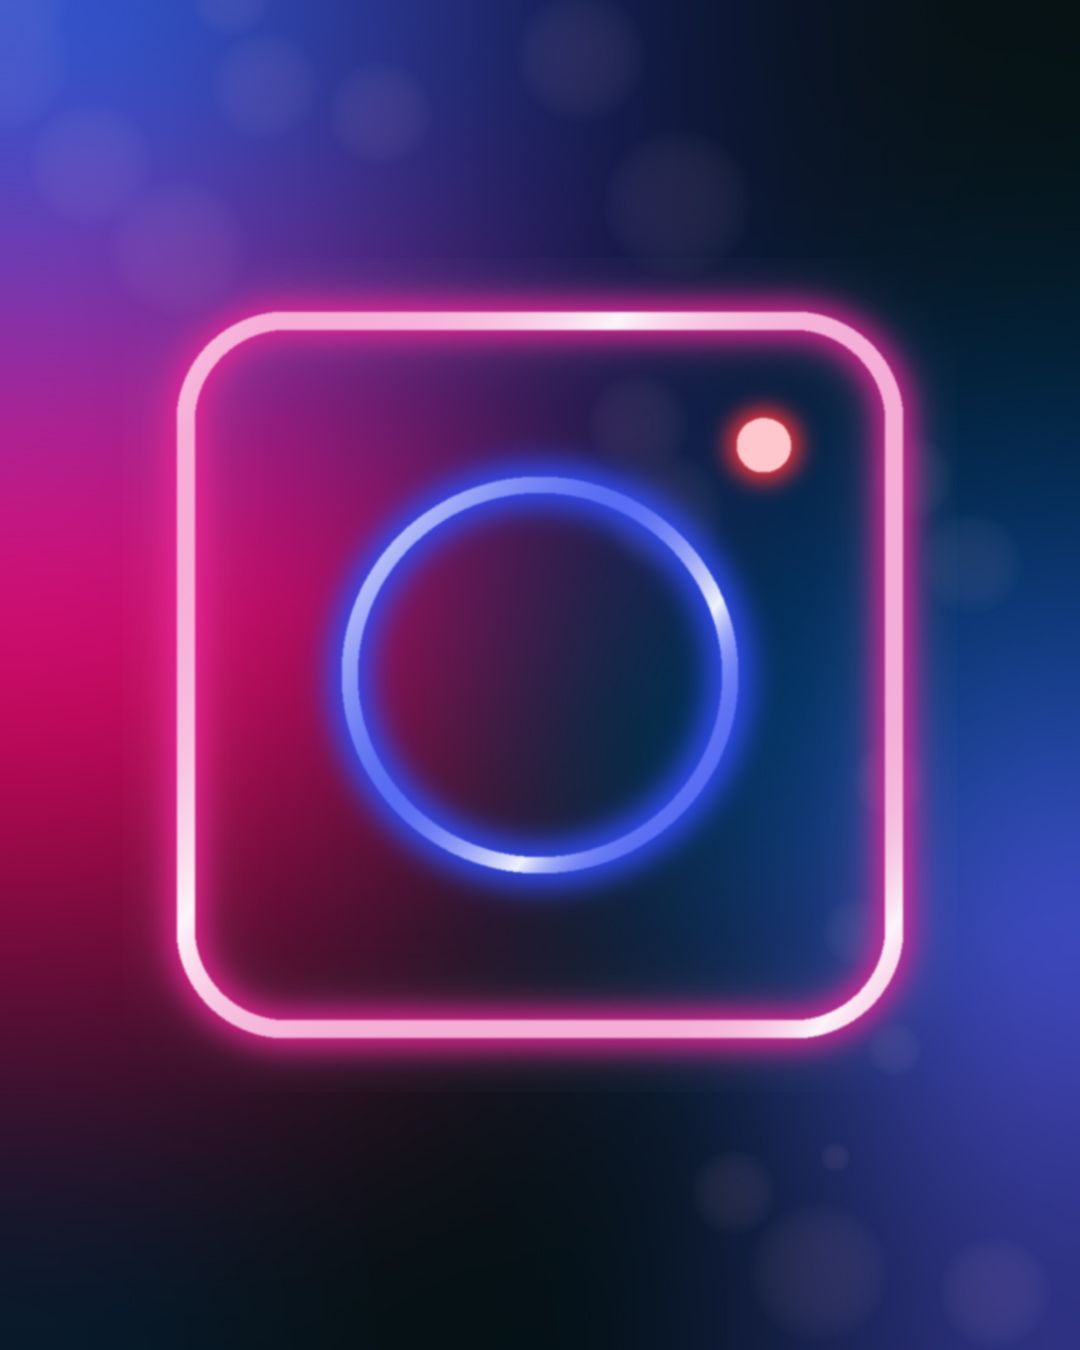 Instagram Neon Logo Wallpaper iphone neon, Neon logo